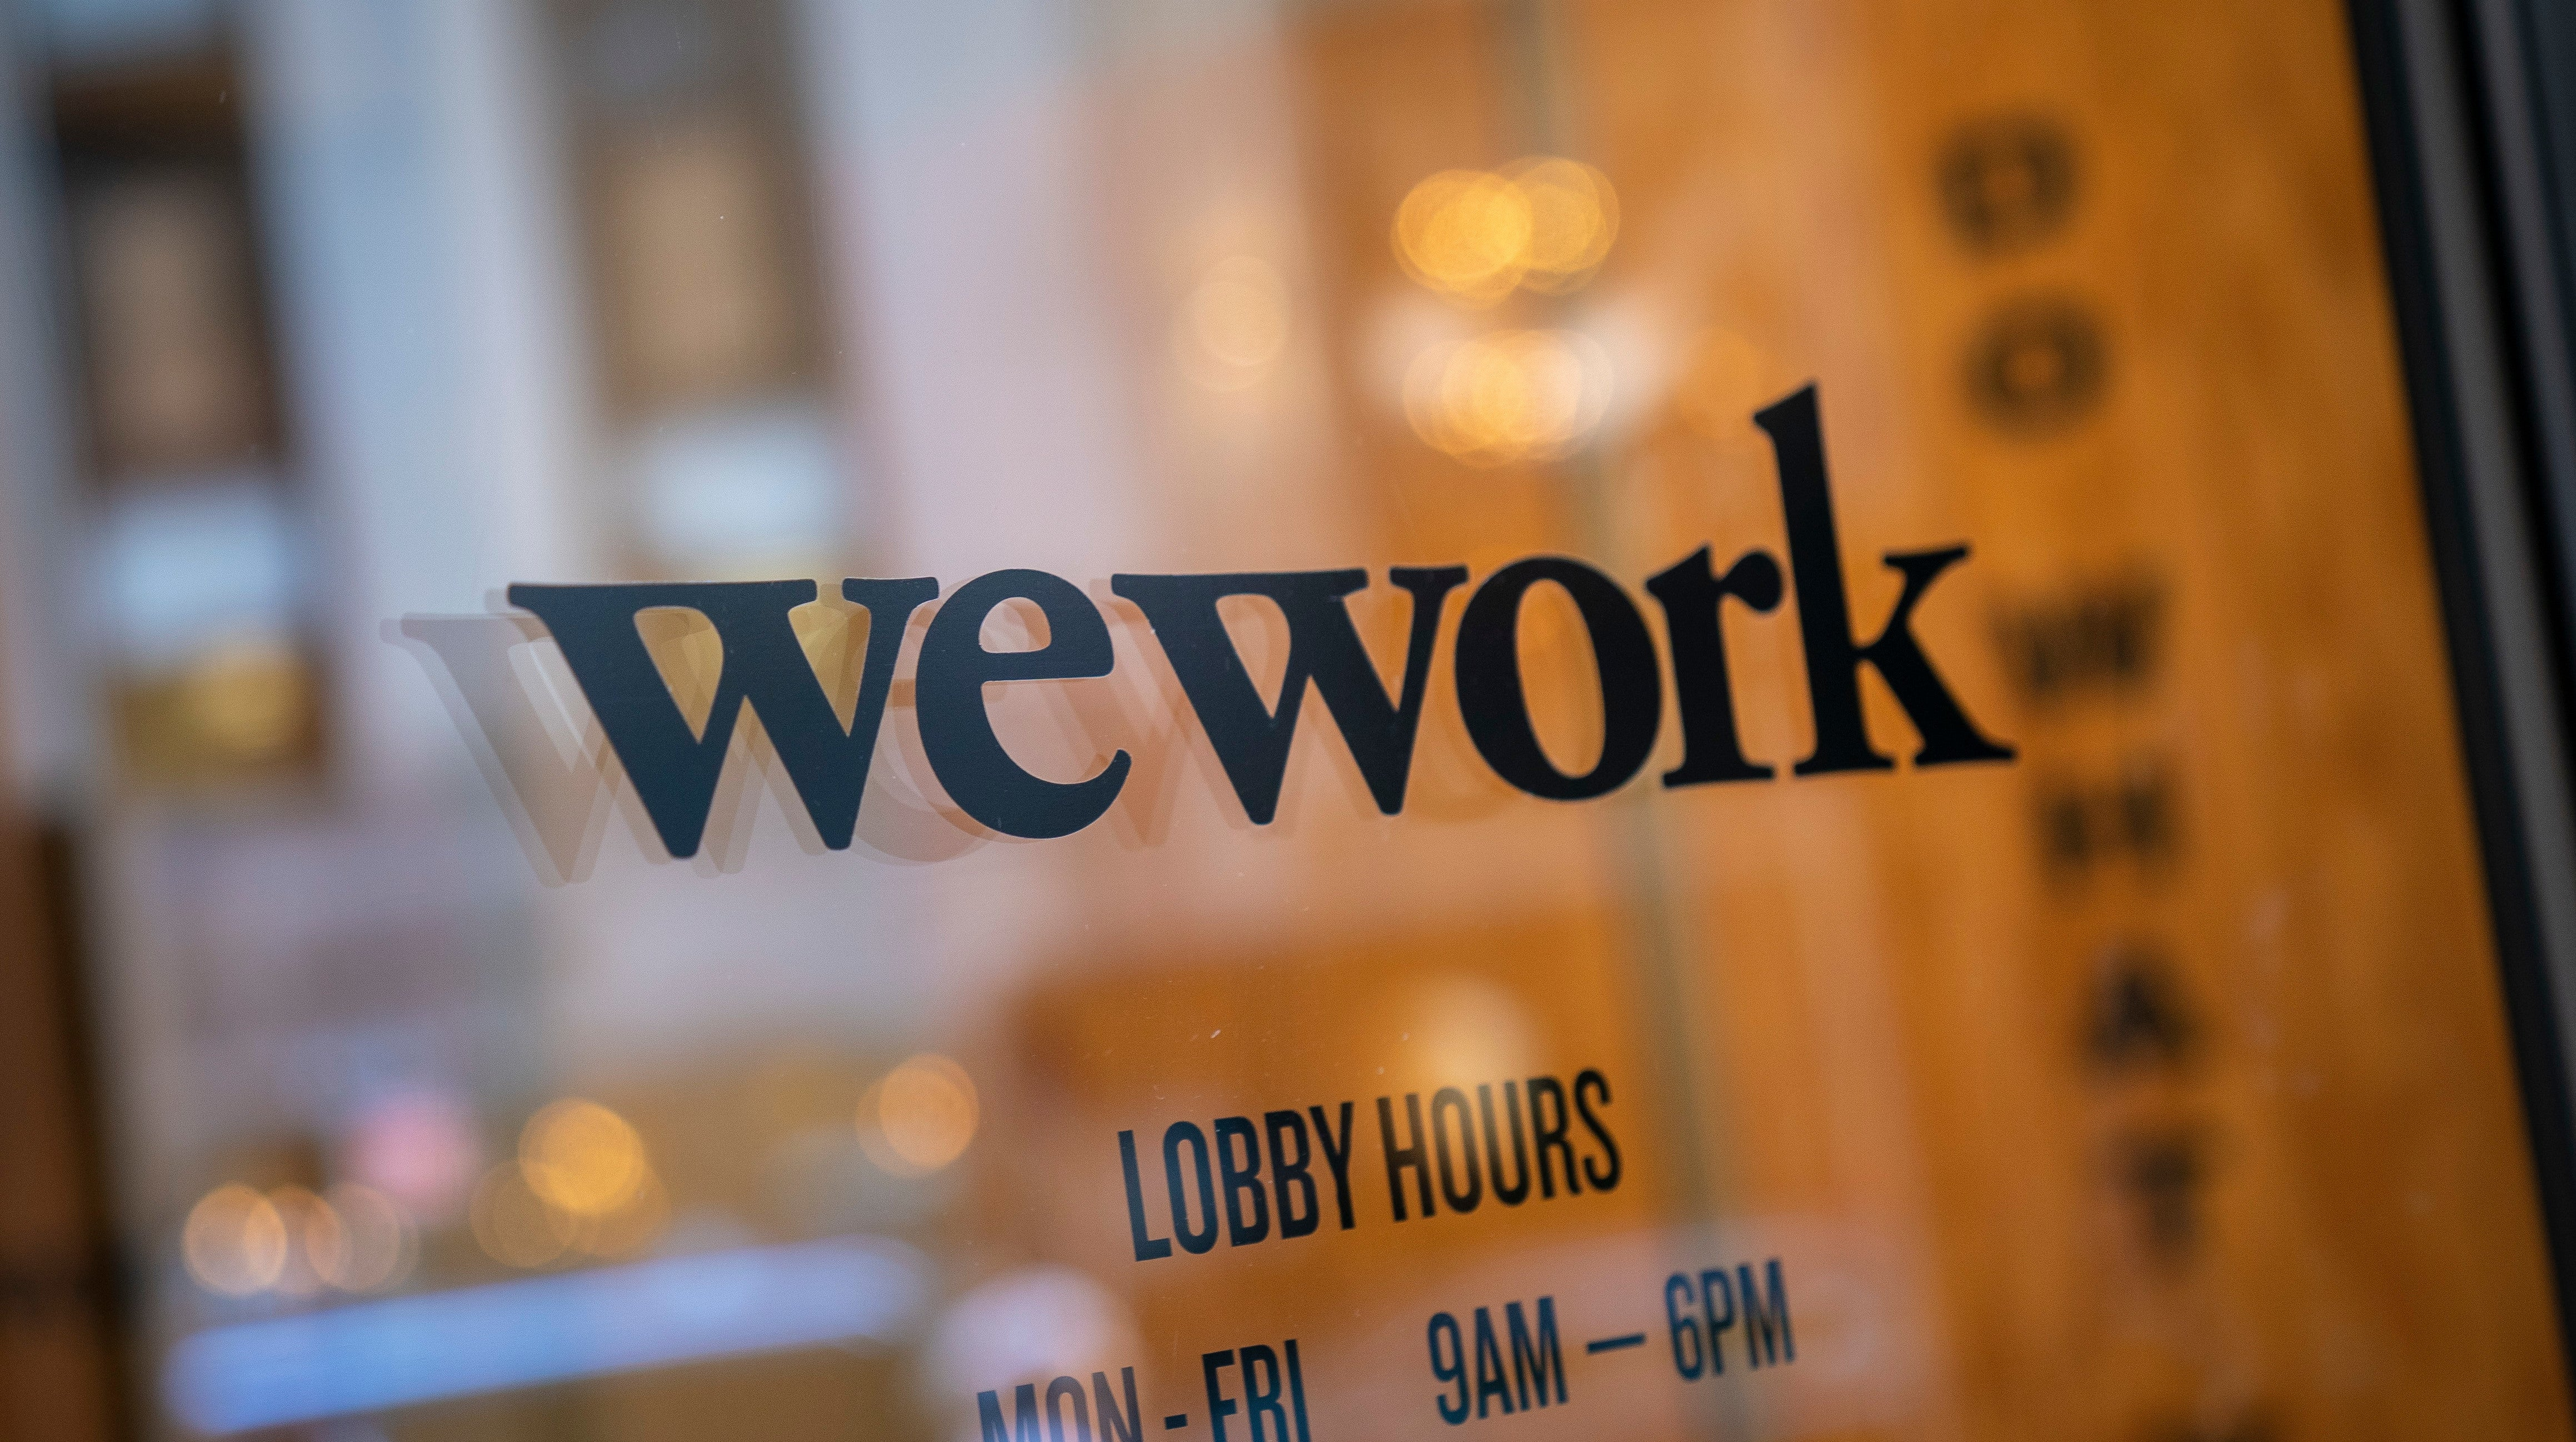 WeWork Is Exposing An 'Astronomical Amount' Of Data On Poorly Protected Wi-Fi Network